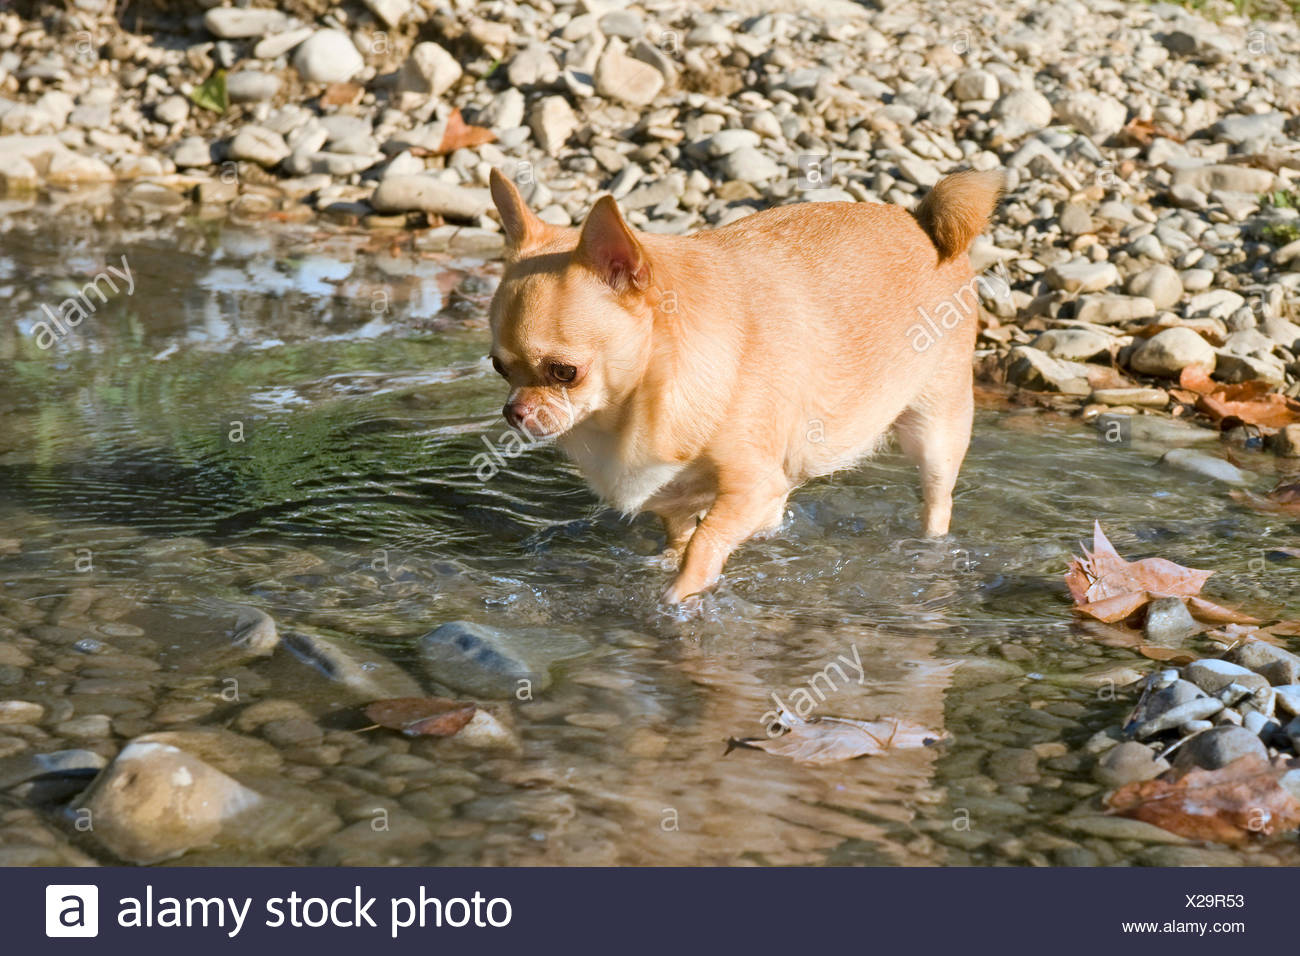 dog, thick, wide, fat, obesity, river, water, walk, go, going, walking, Stock Photo